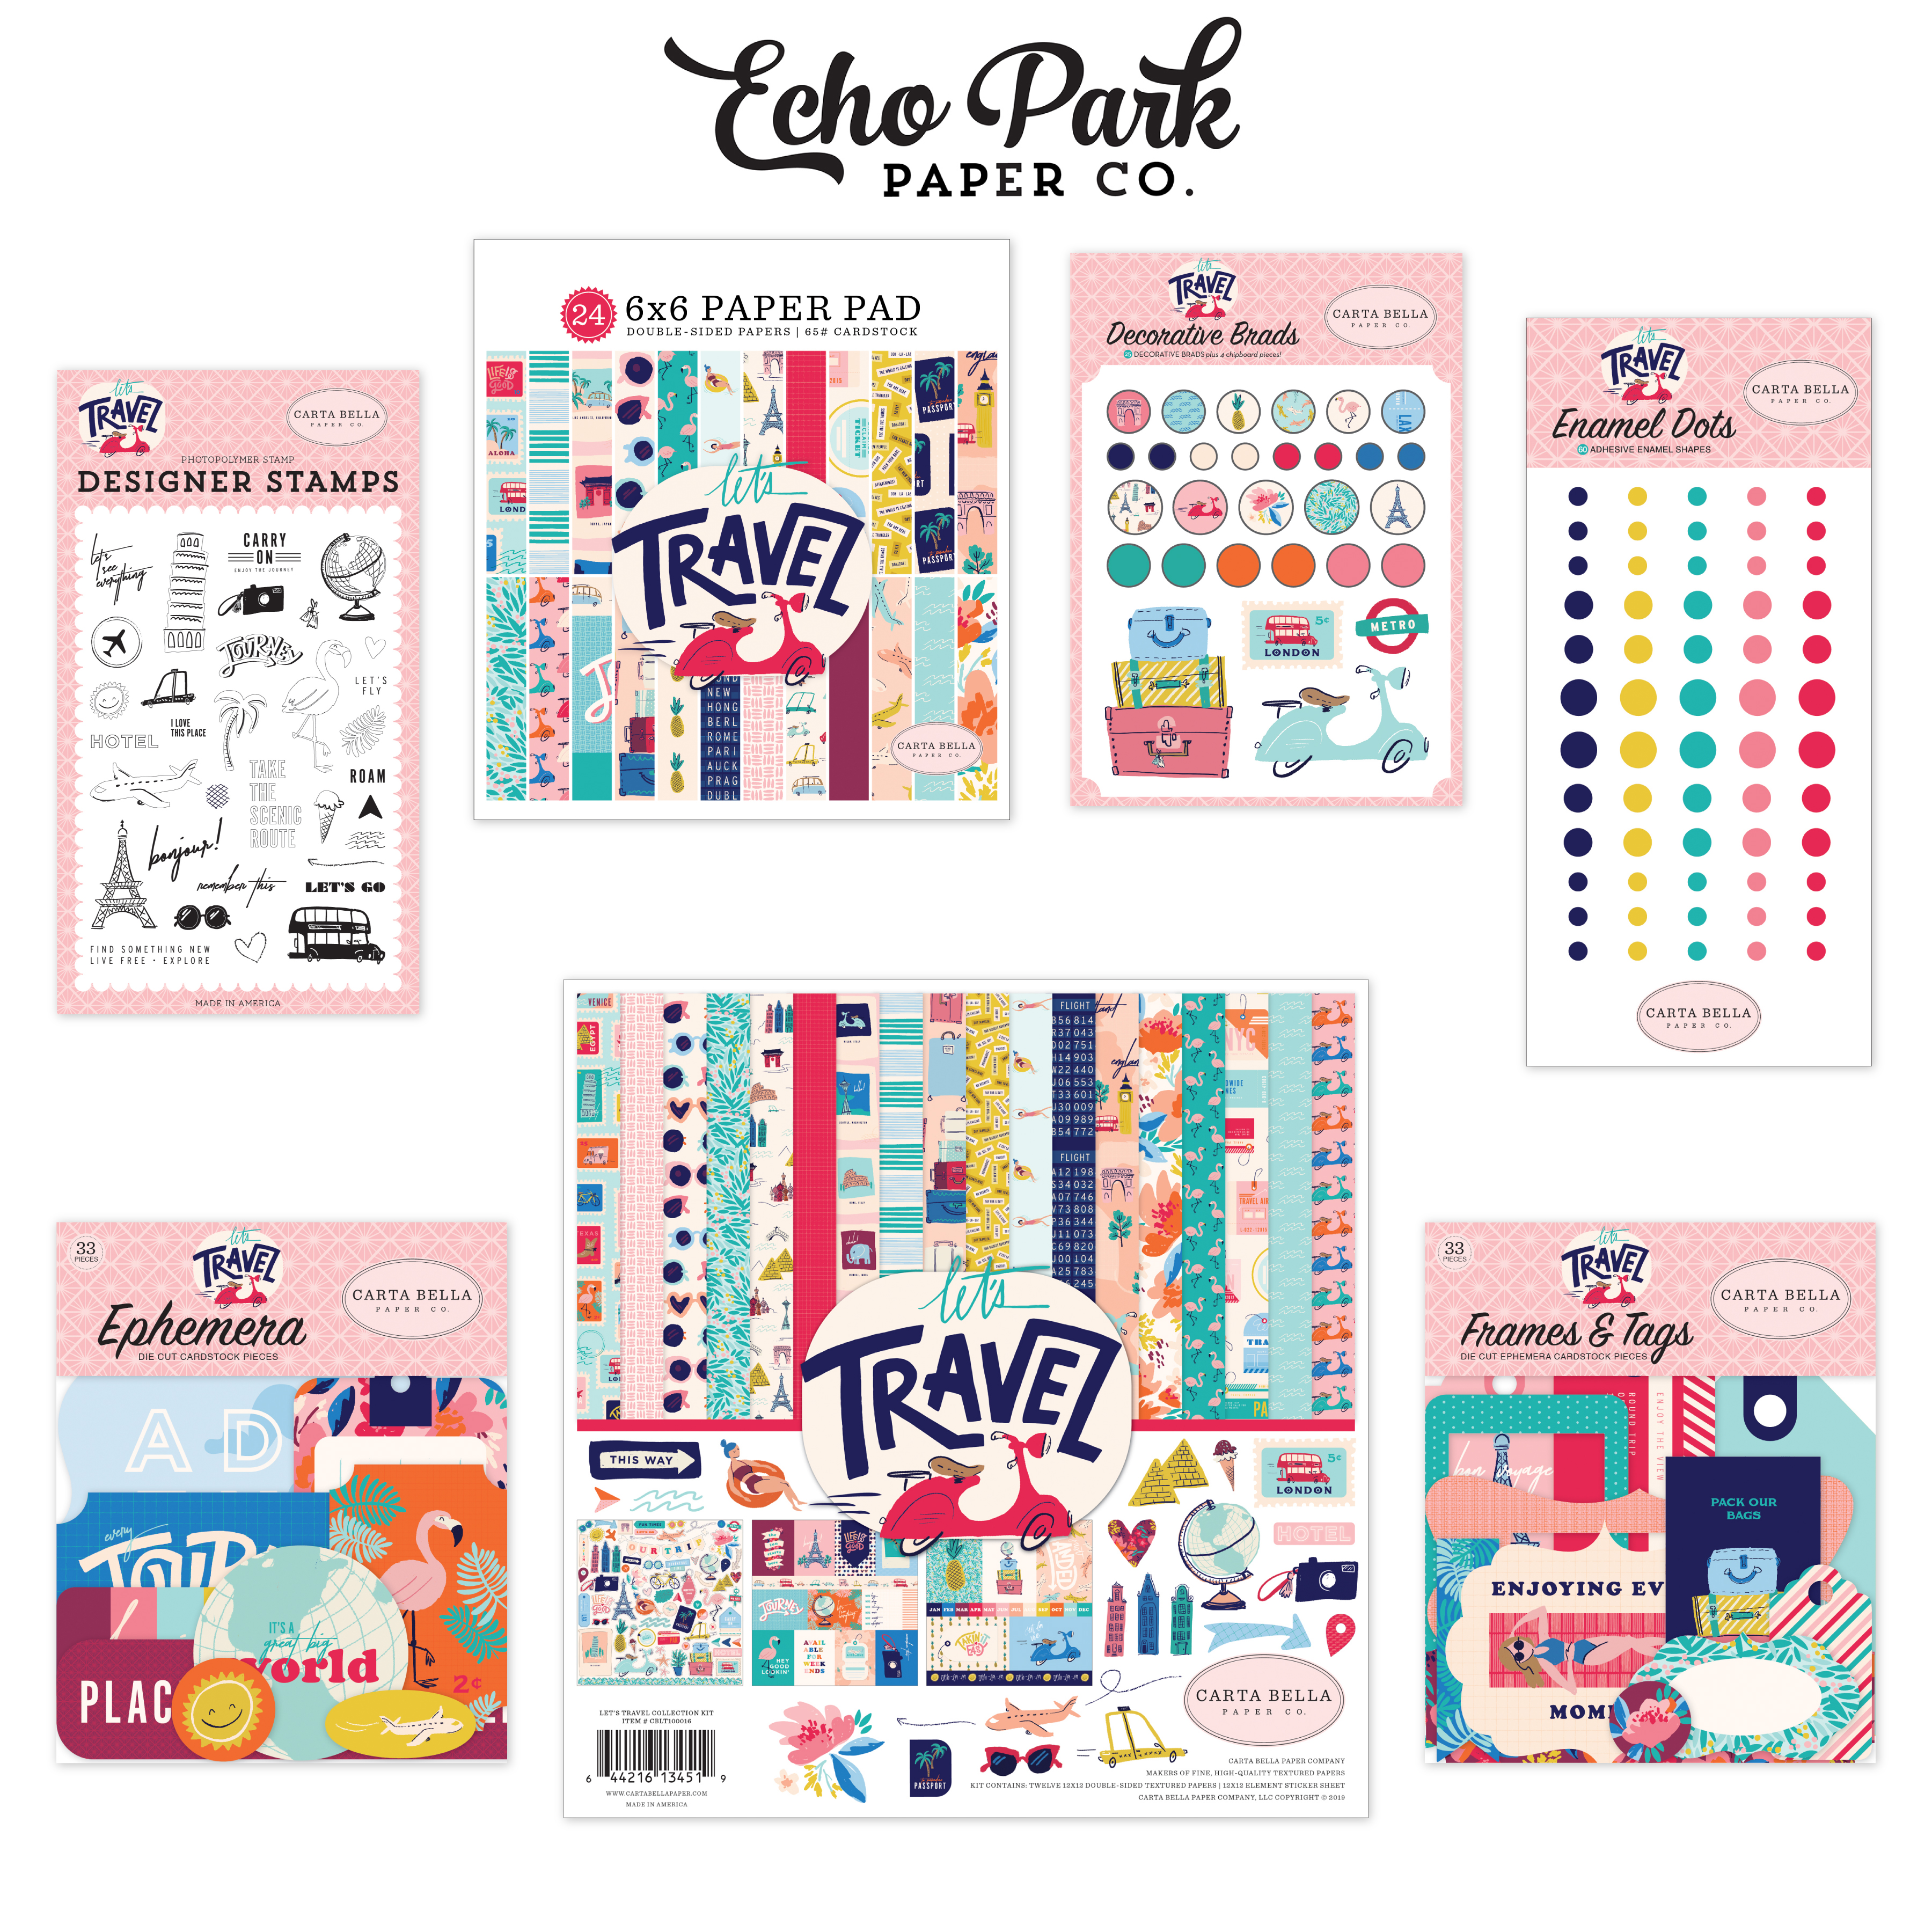 Lets Travel Prize Package by Echo Park Paper Co.